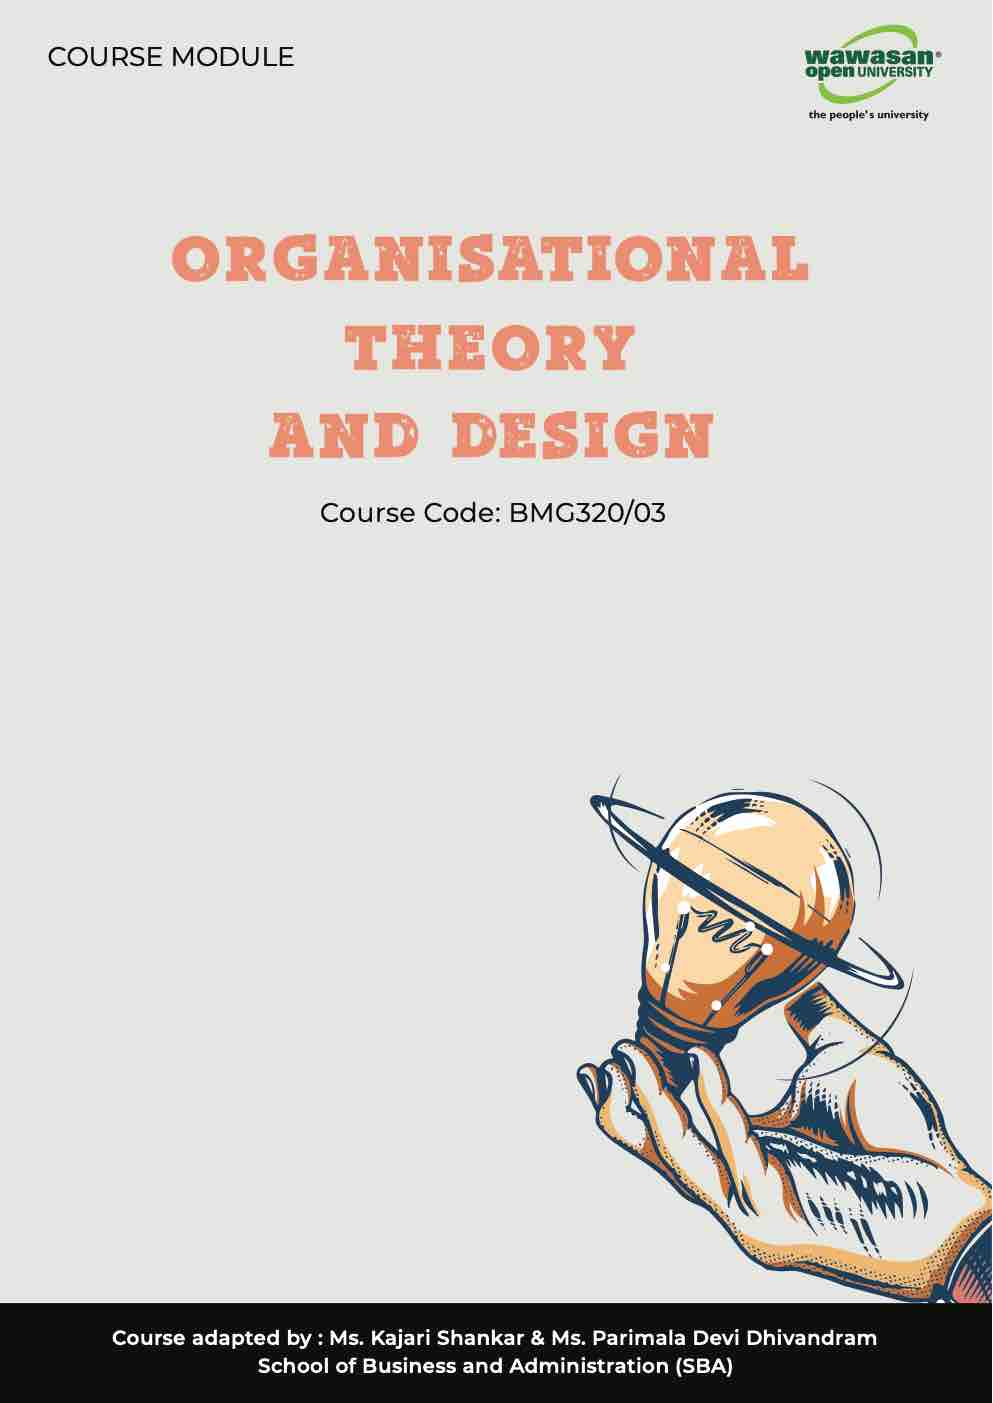 Bmg320 03 Organisational Theory And Design Pages 1 50 Text Version Anyflip